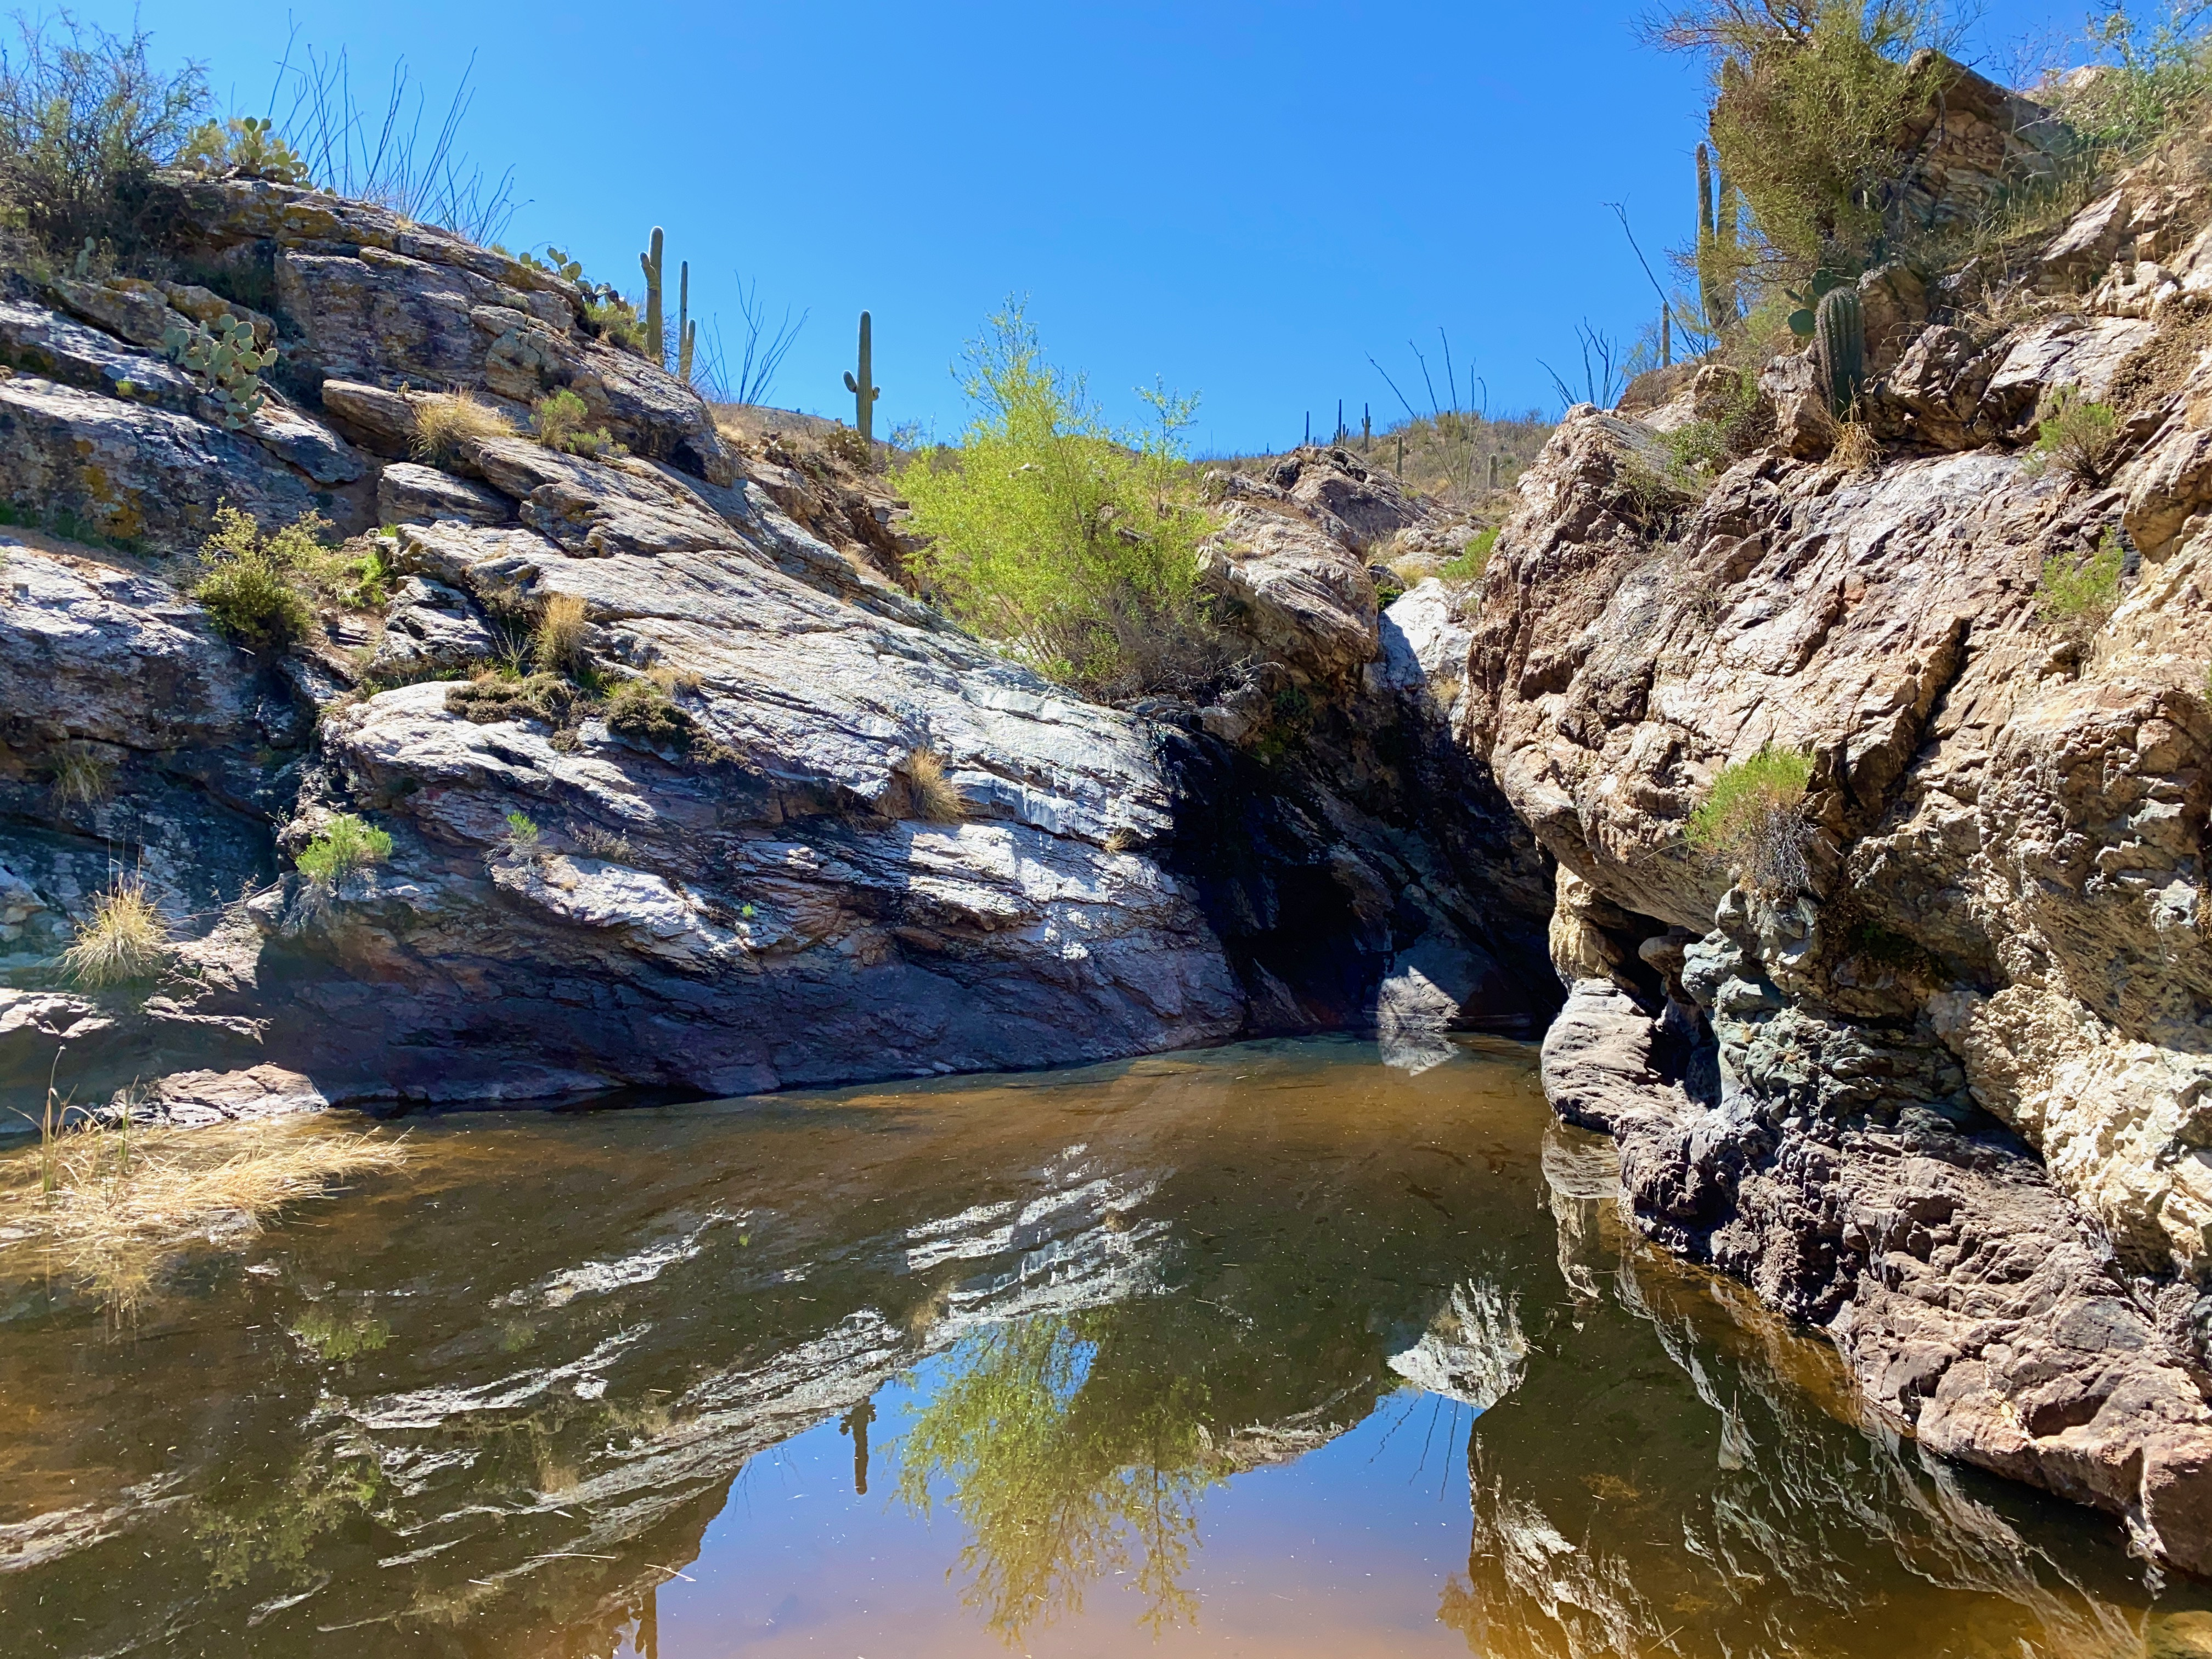 water hole on Wildhorse Trail in Saguaro National Park